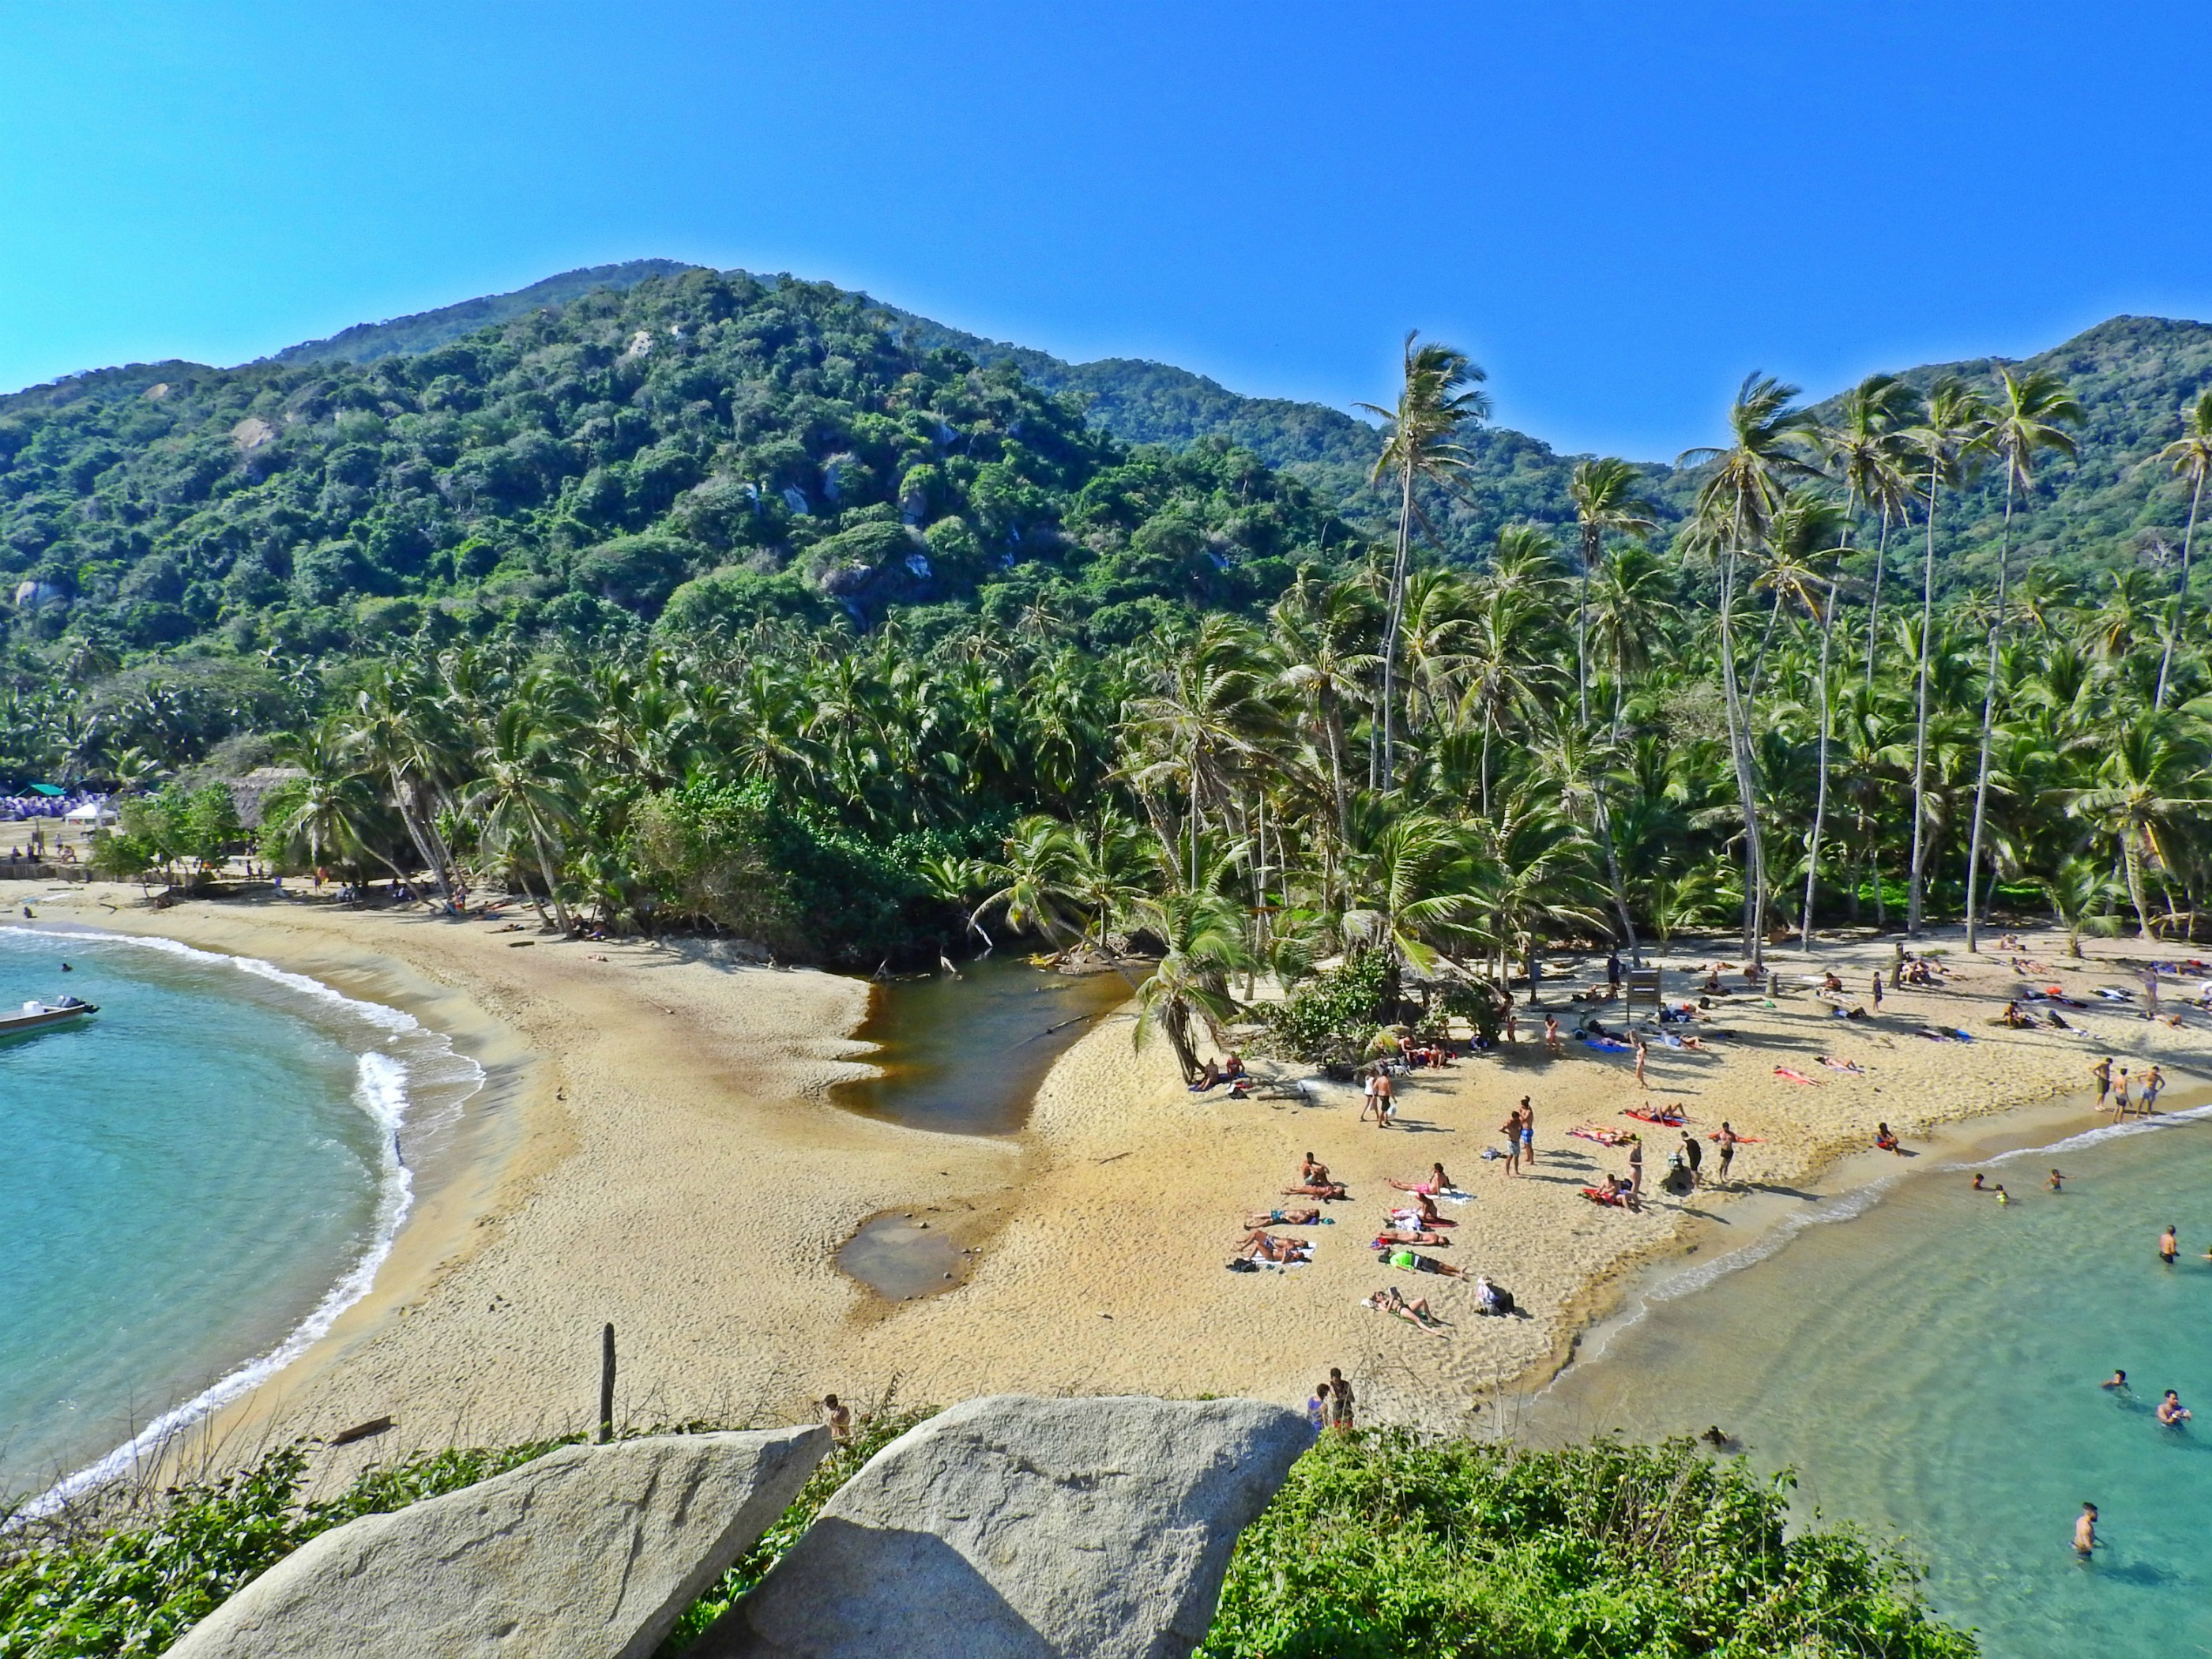 Colombia's Tayrona National Park: What to Expect ...